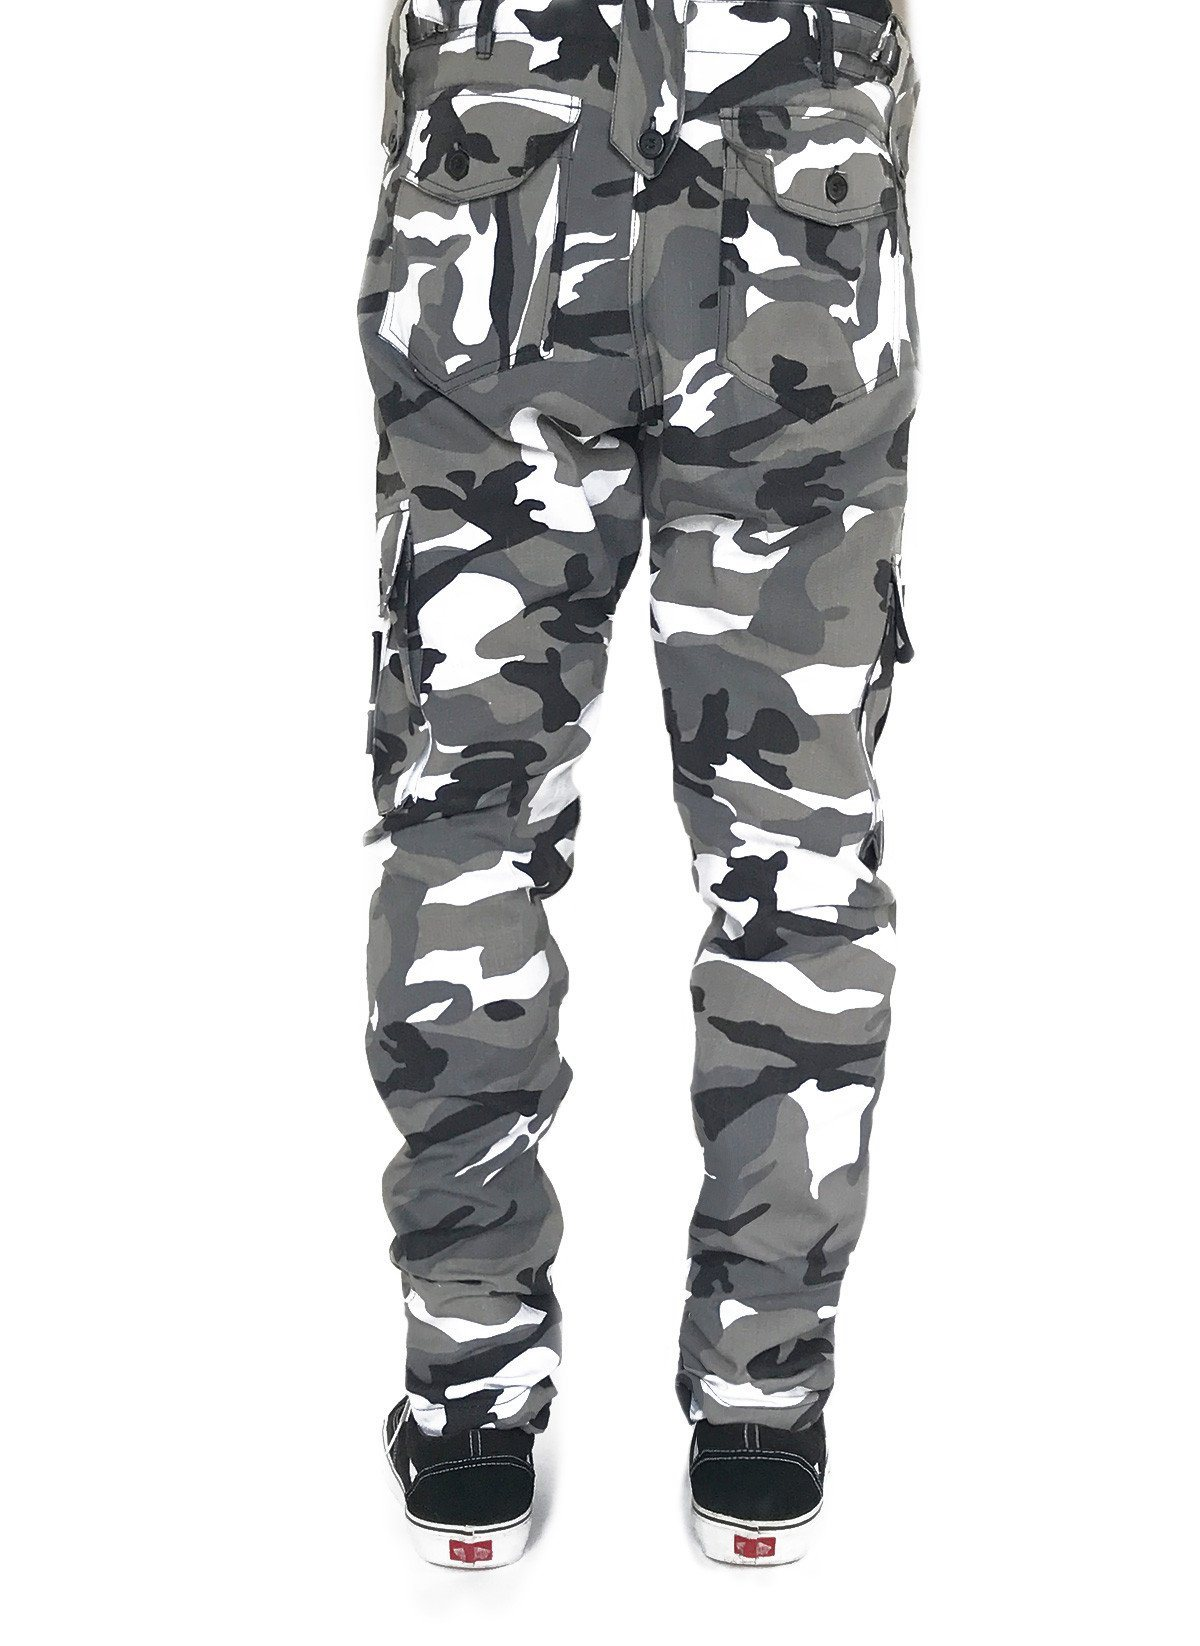 The Urban Black and White Camouflage Pants are designed for anyone looking for a comfortable, durable, cargo pant with lots of pockets. Urban camouflage is black, white dark grey and lighter grey camo.